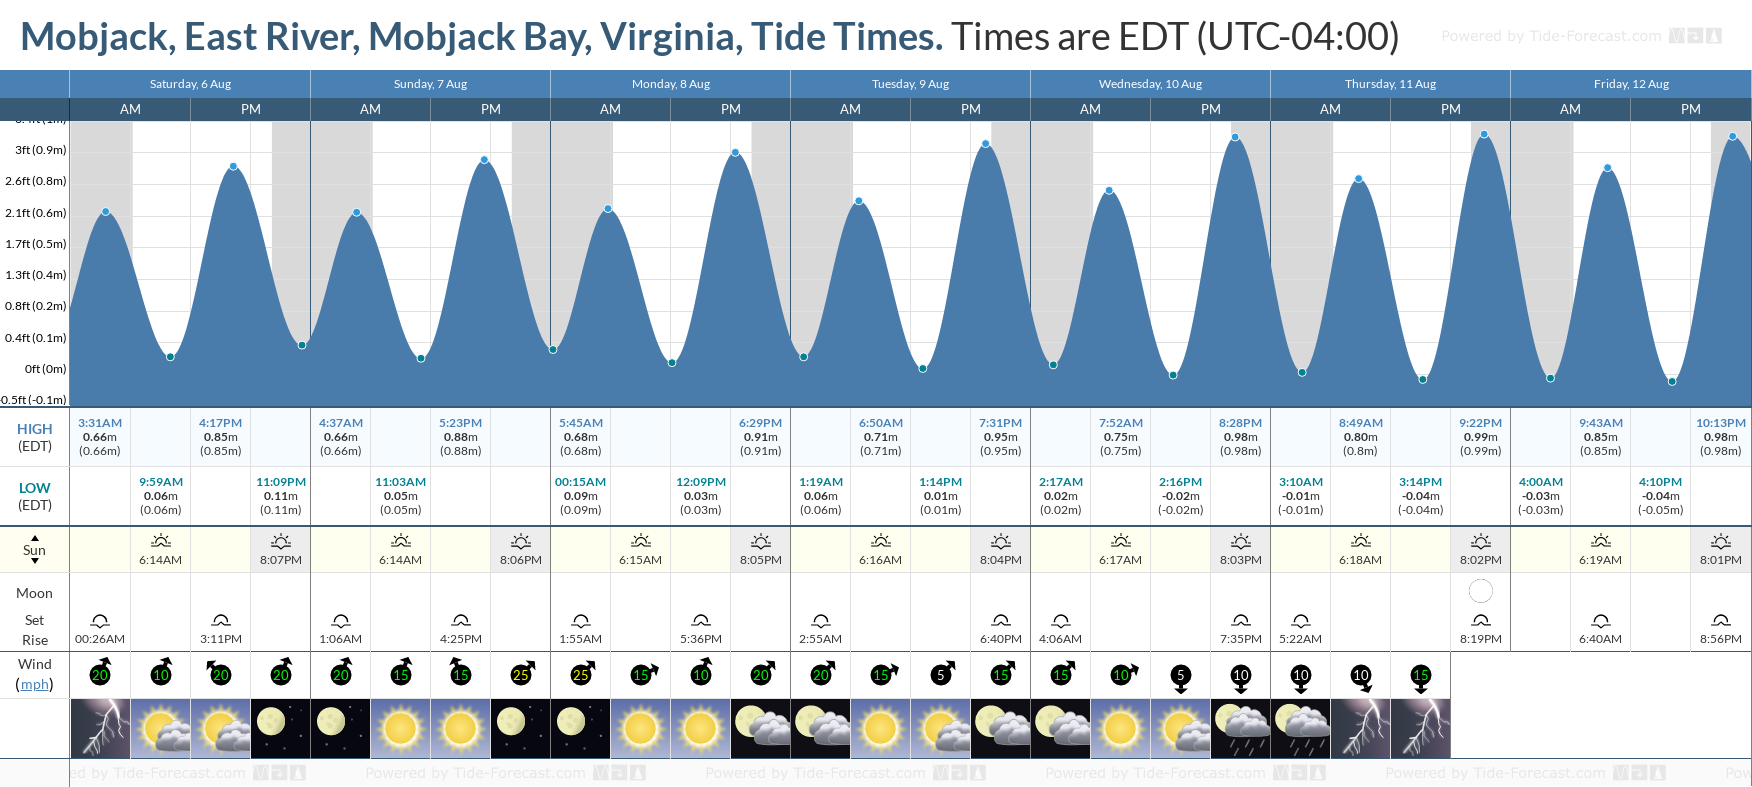 Mobjack, East River, Mobjack Bay, Virginia Tide Chart including high and low tide tide times for the next 7 days